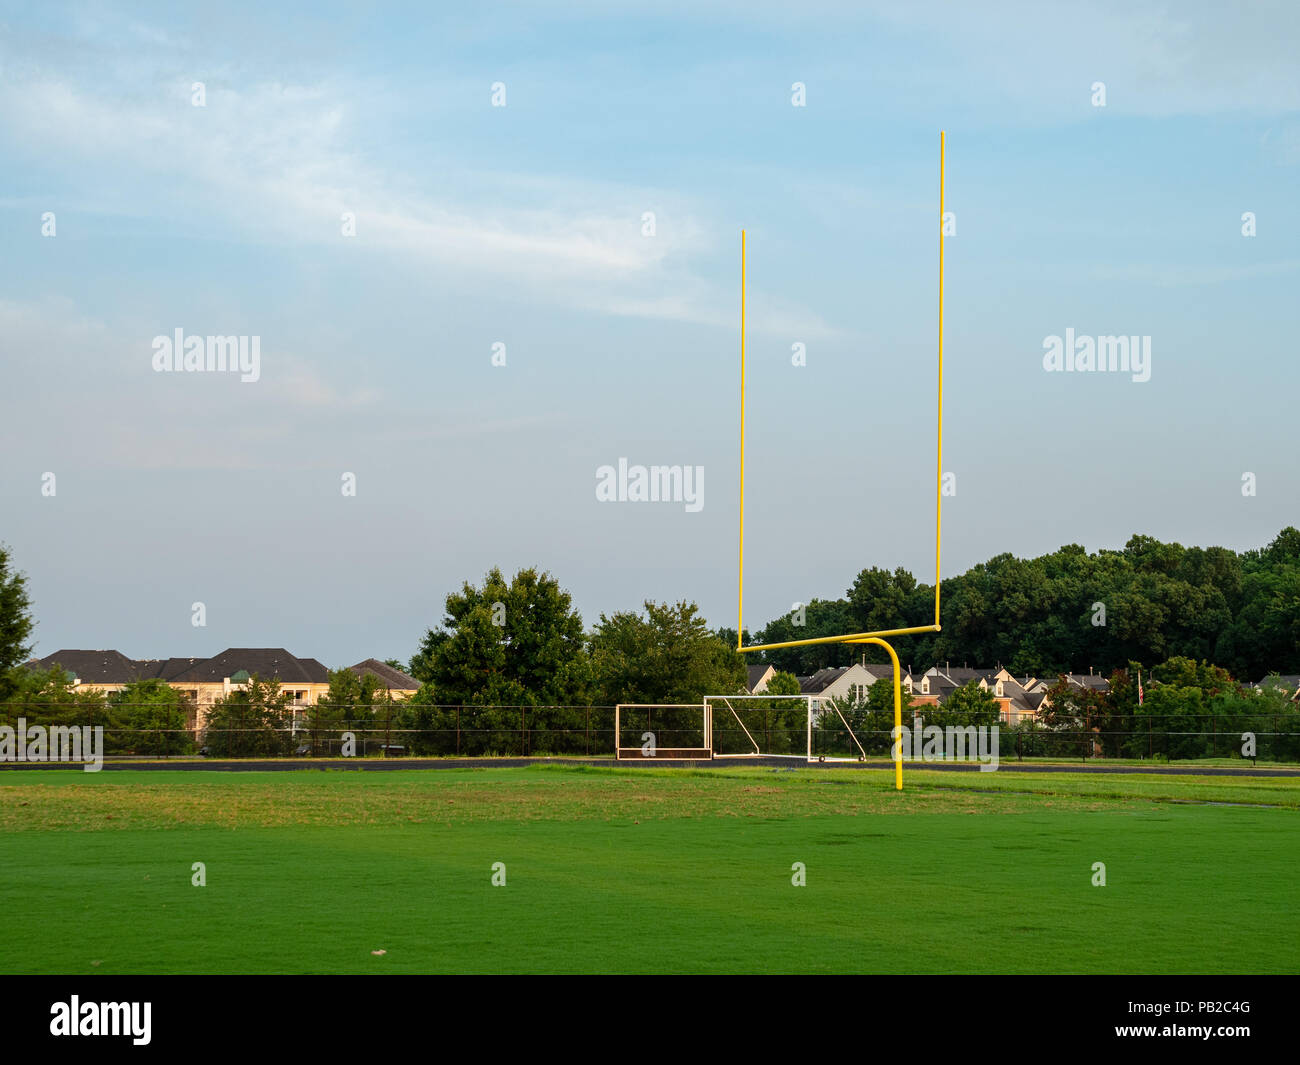 Football goal post at a high school field in the evening sun  - Stock Image